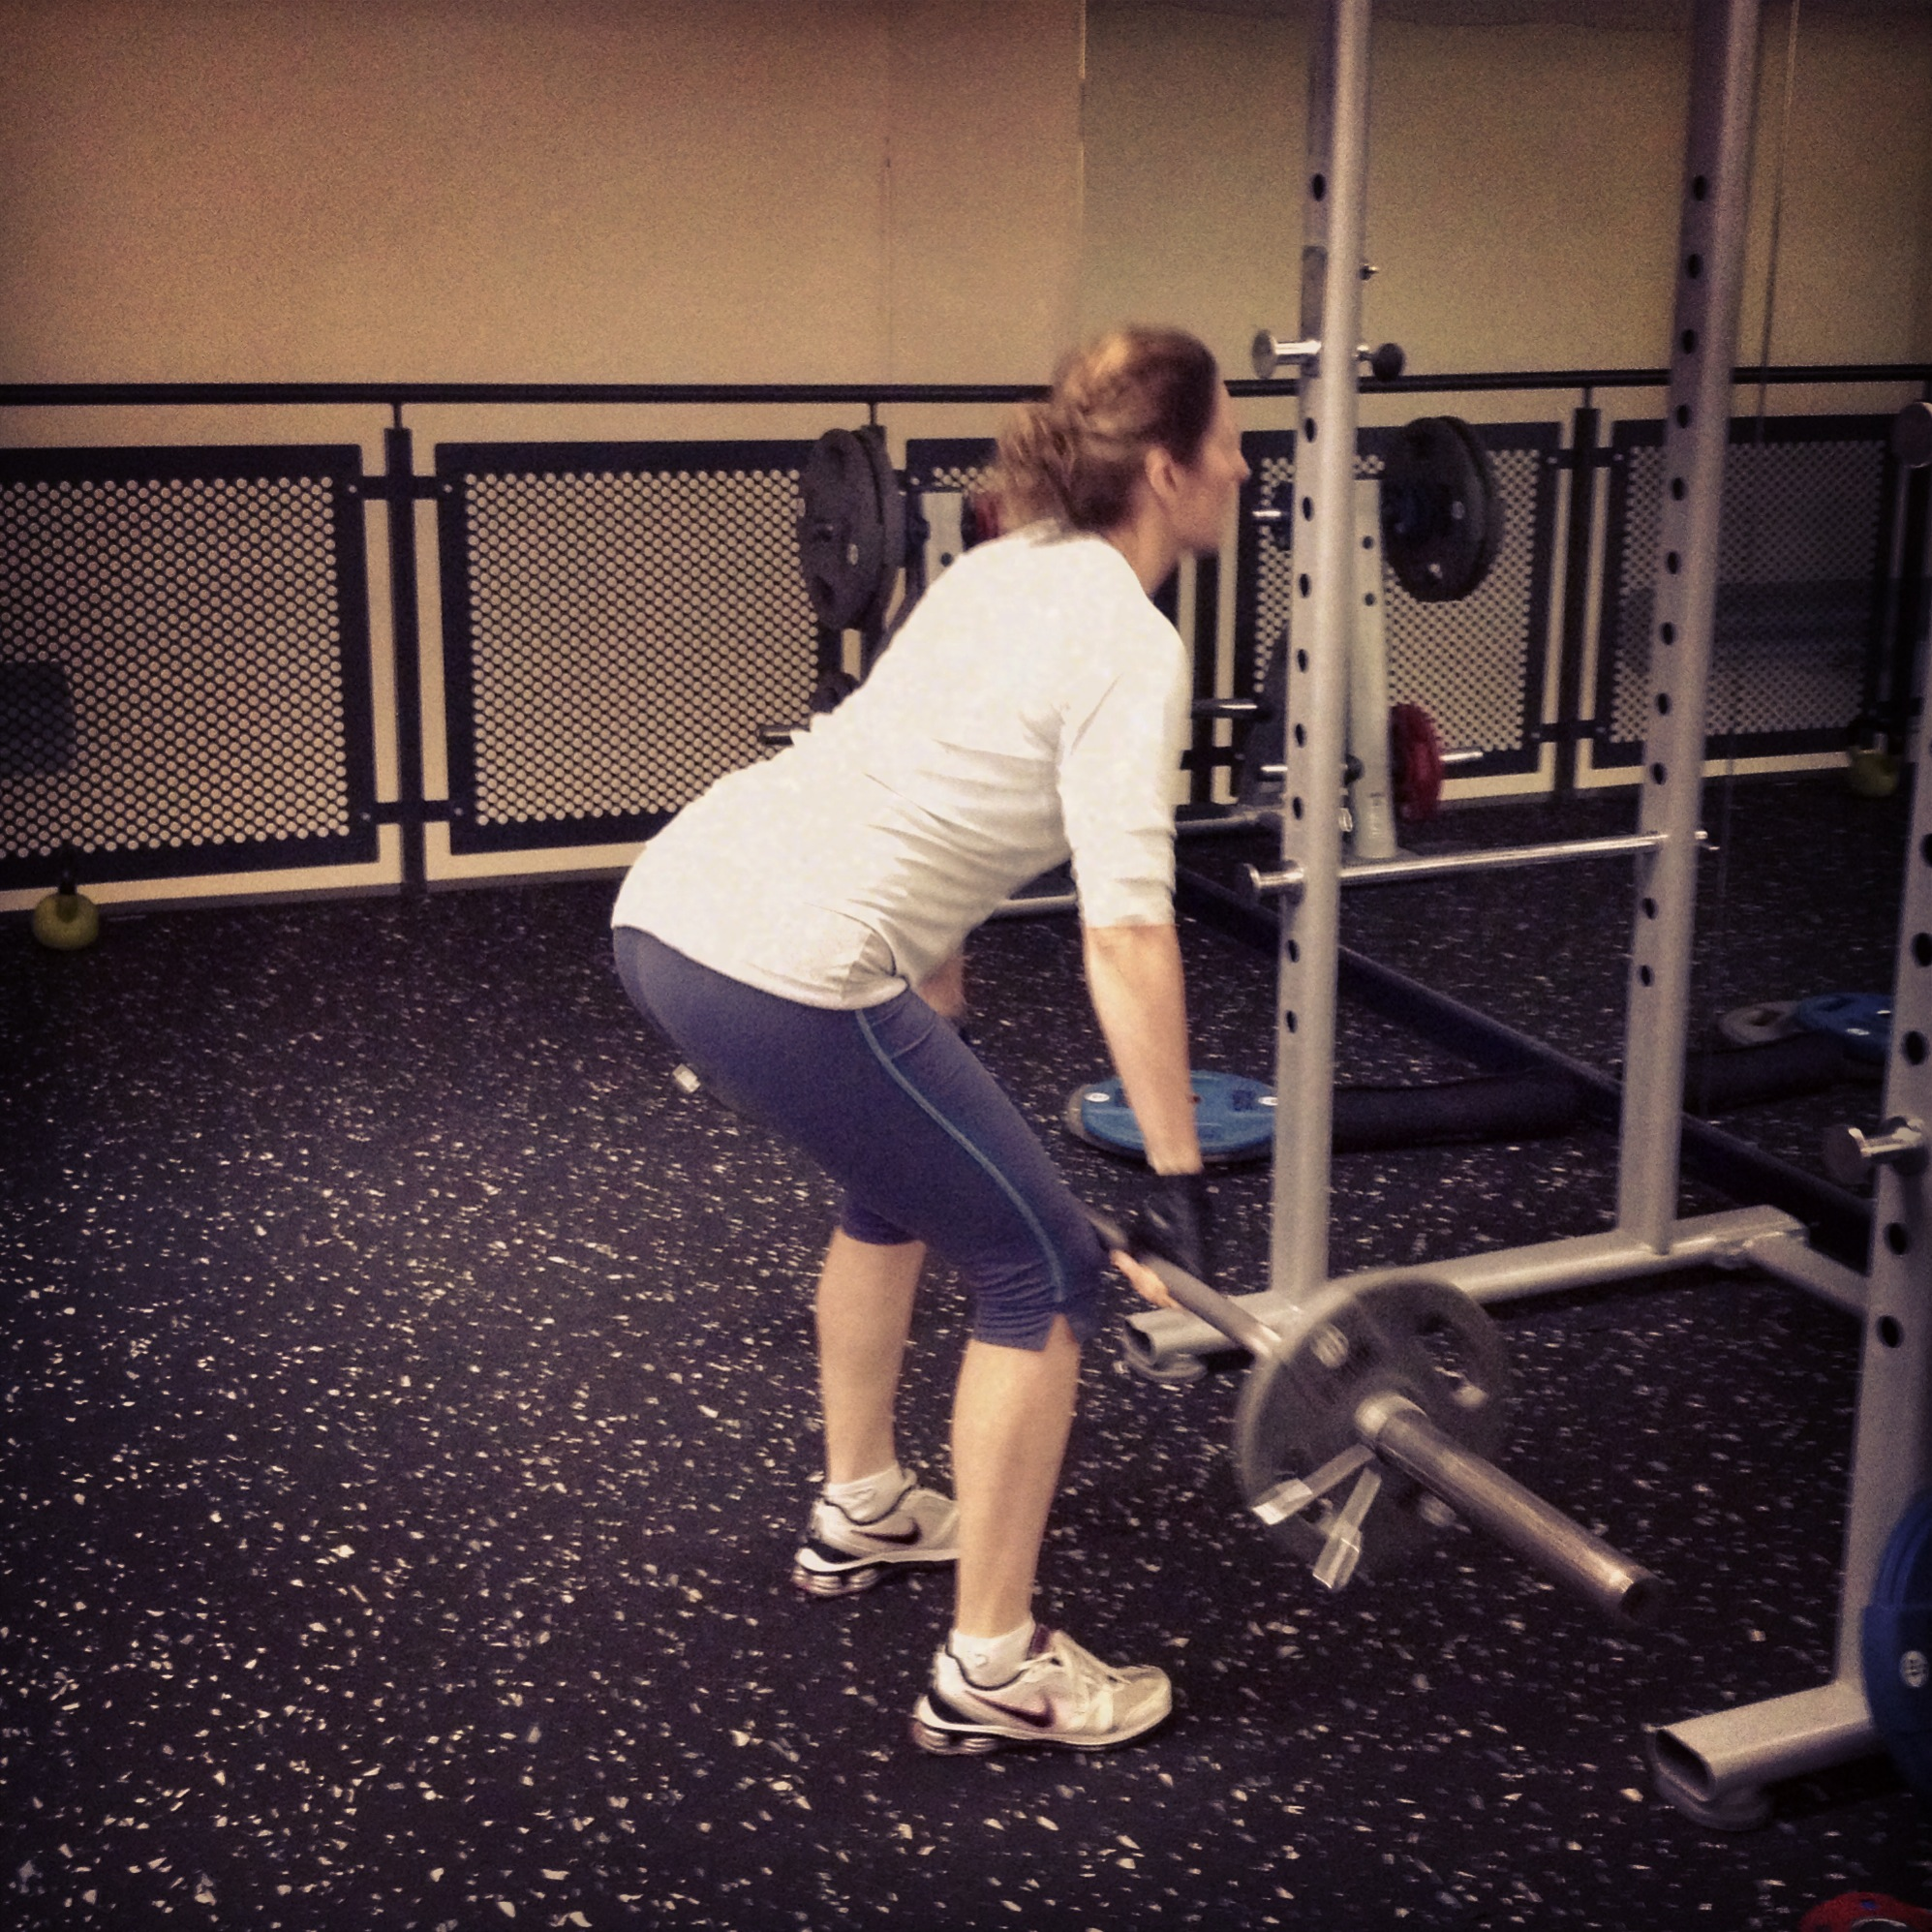 summer body tips, Personal Trainer Stockport, Weight Training, Fitness, Woman Lifting Weights